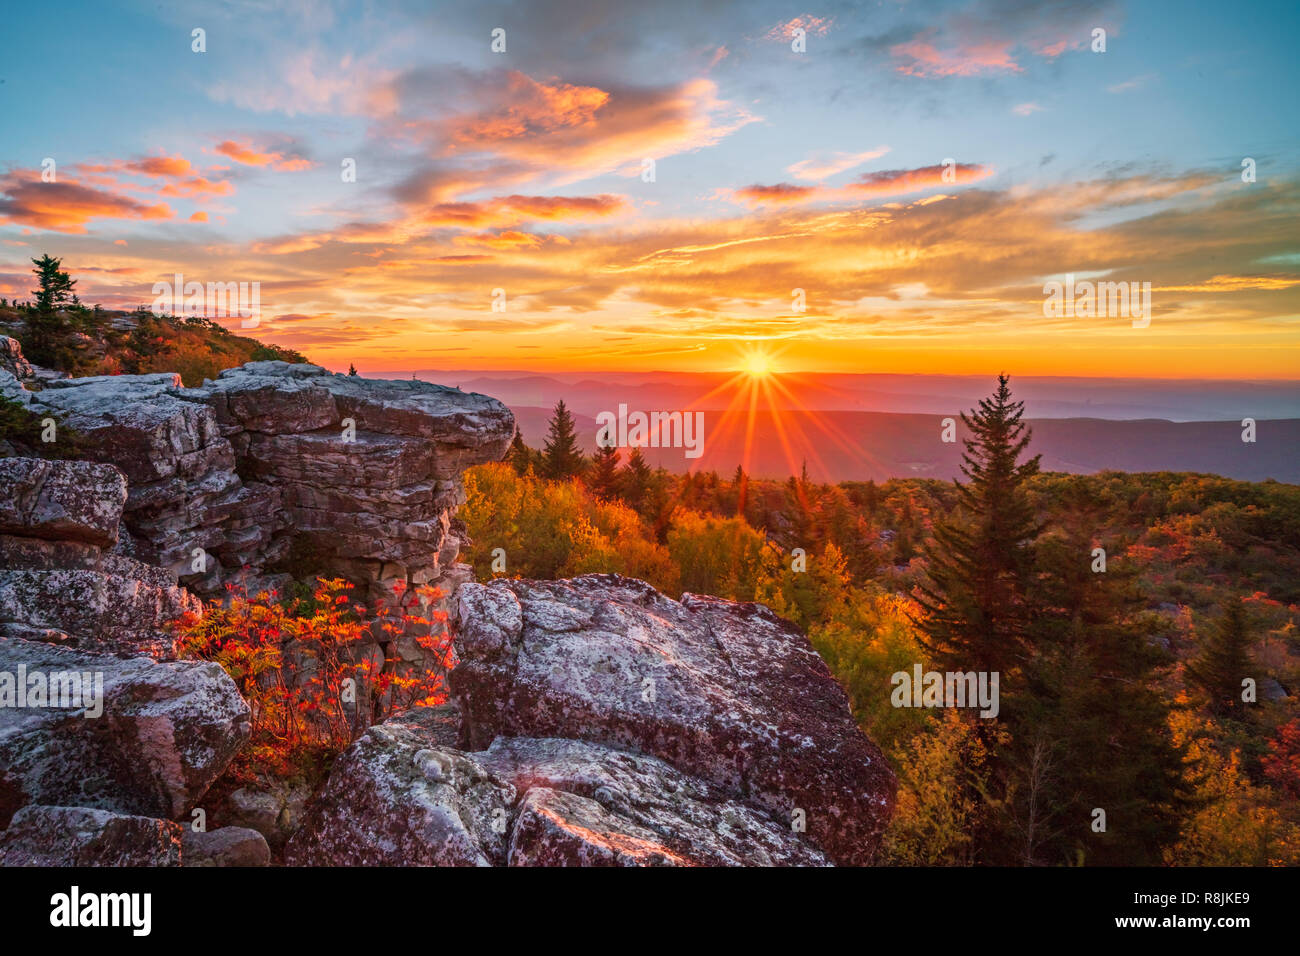 The sun rises over a mountain ridge in the Highlands of West Virginia. Stock Photo